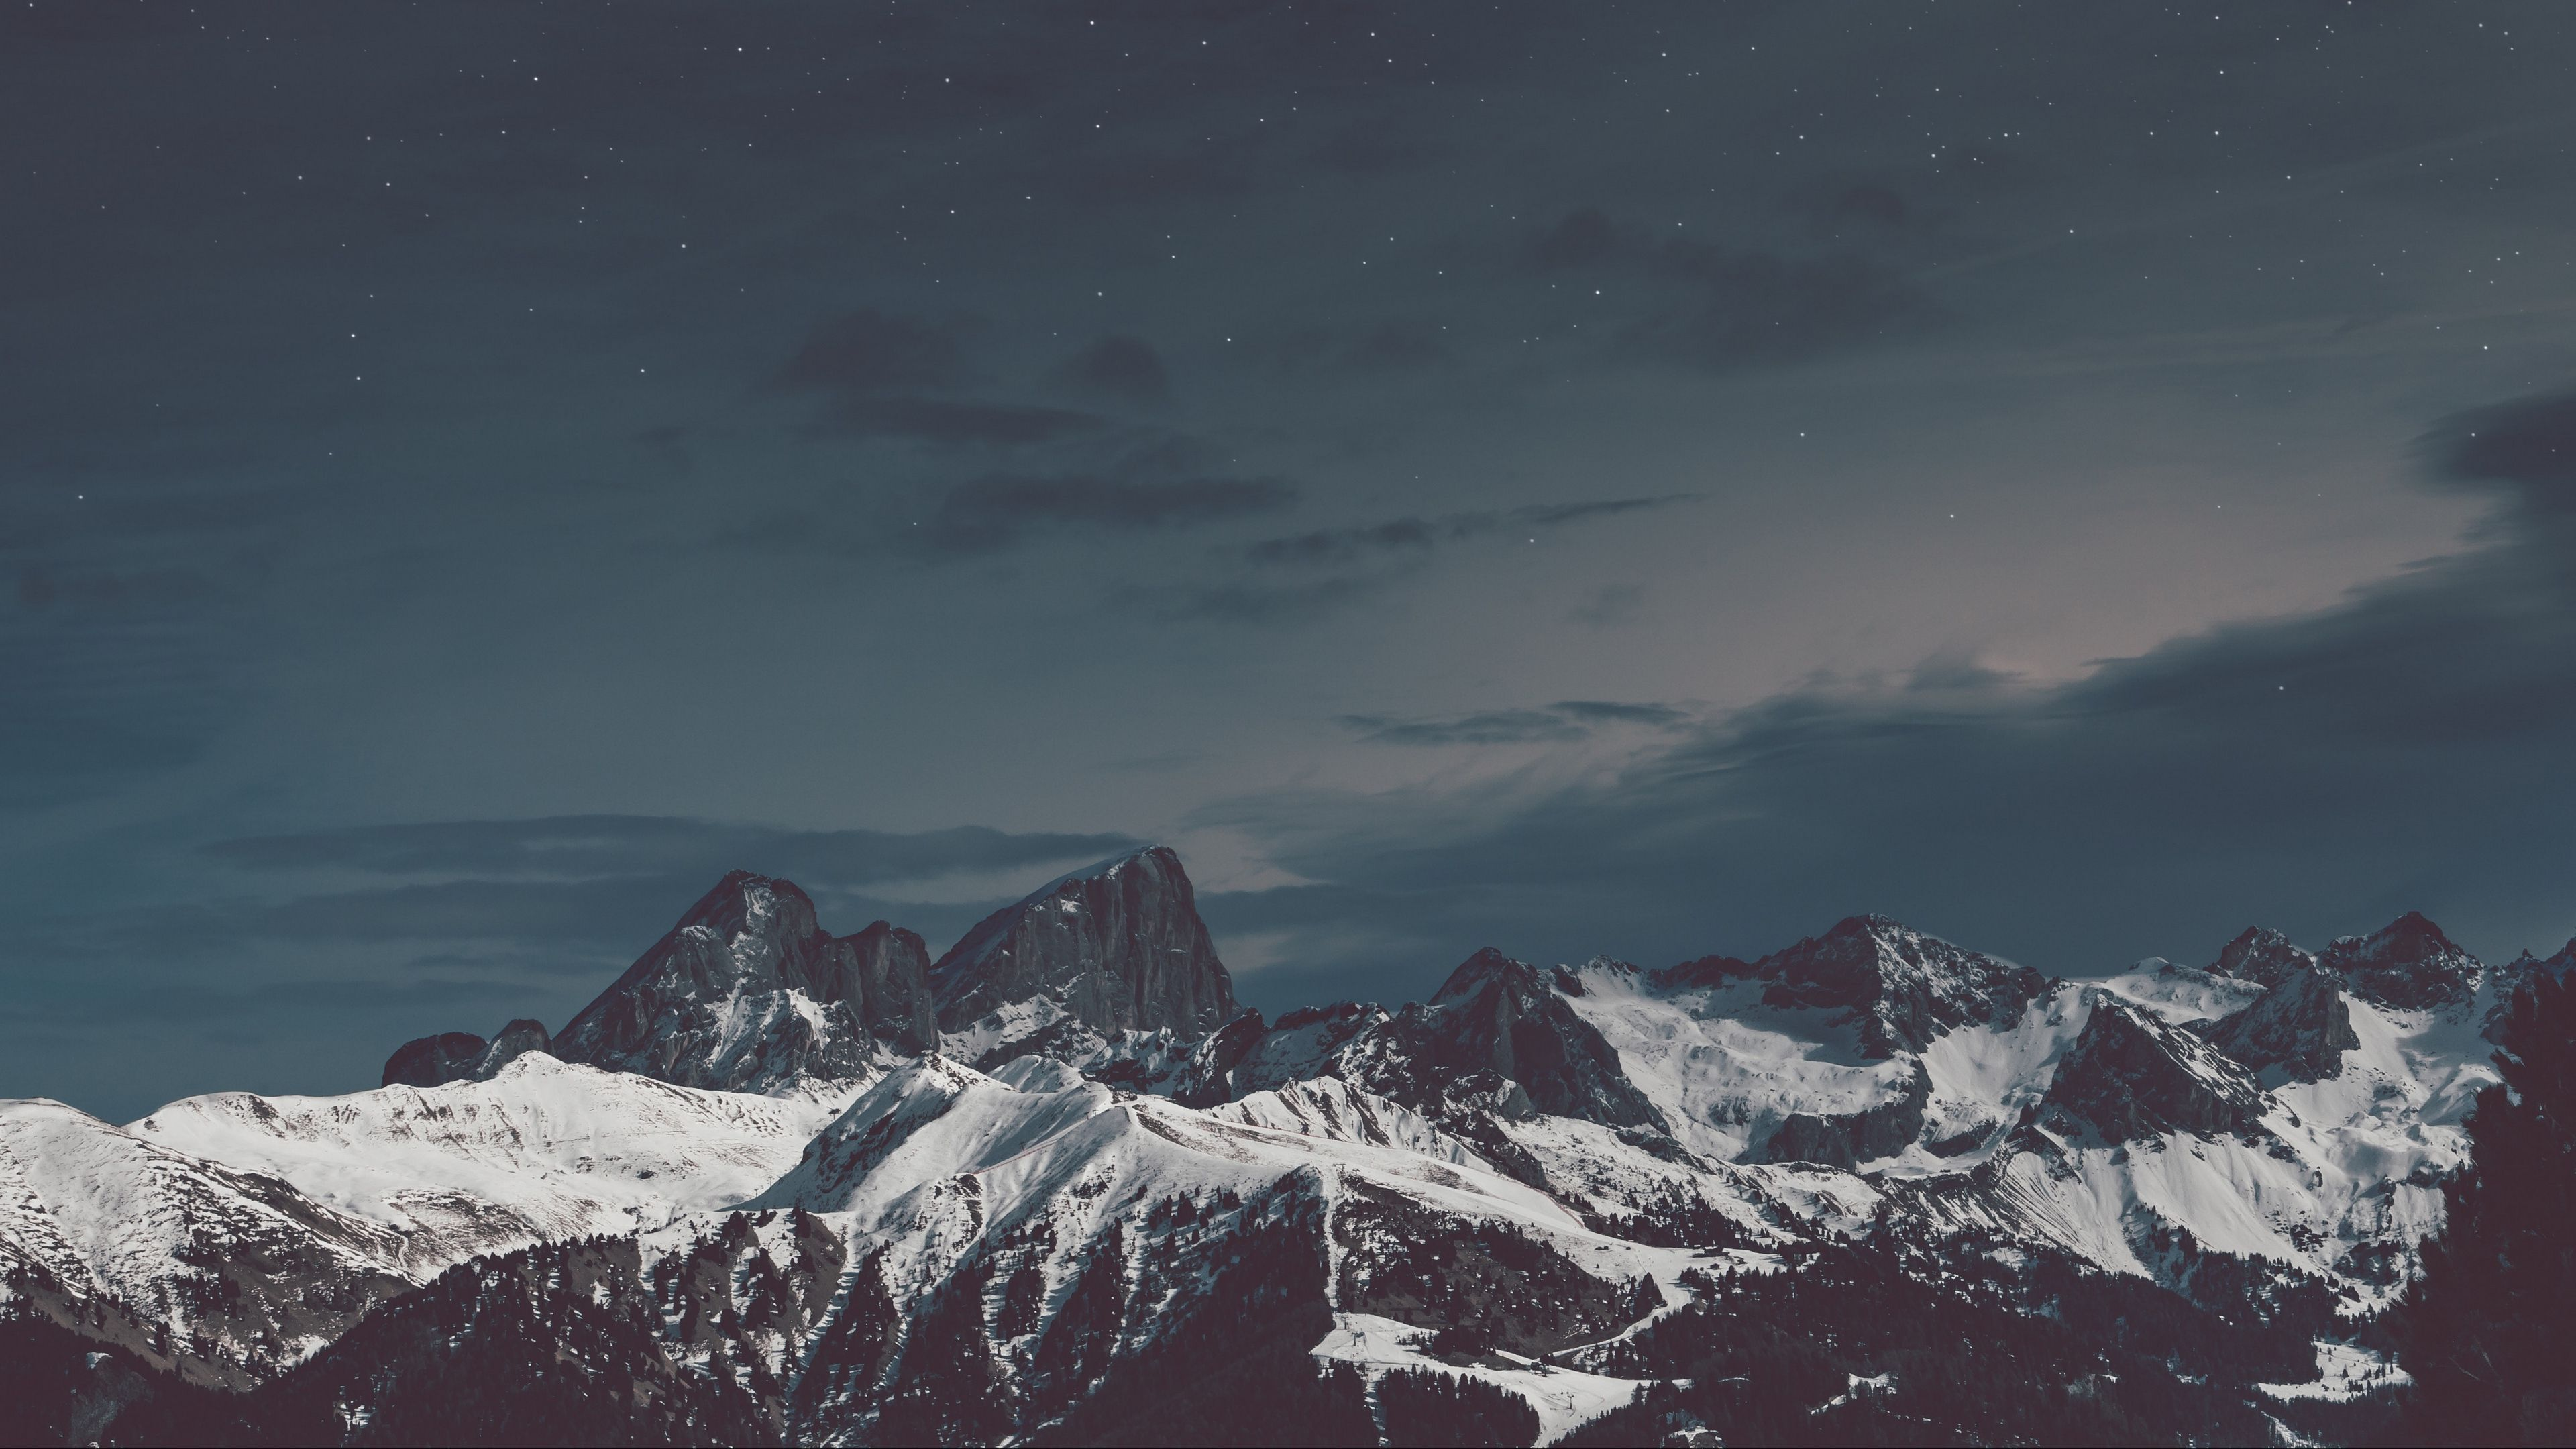 Mountains Snow Sky Night 4k Snow Sky Mountains Wallpaper Pc Landscape Wallpaper Best Wallpapers Android